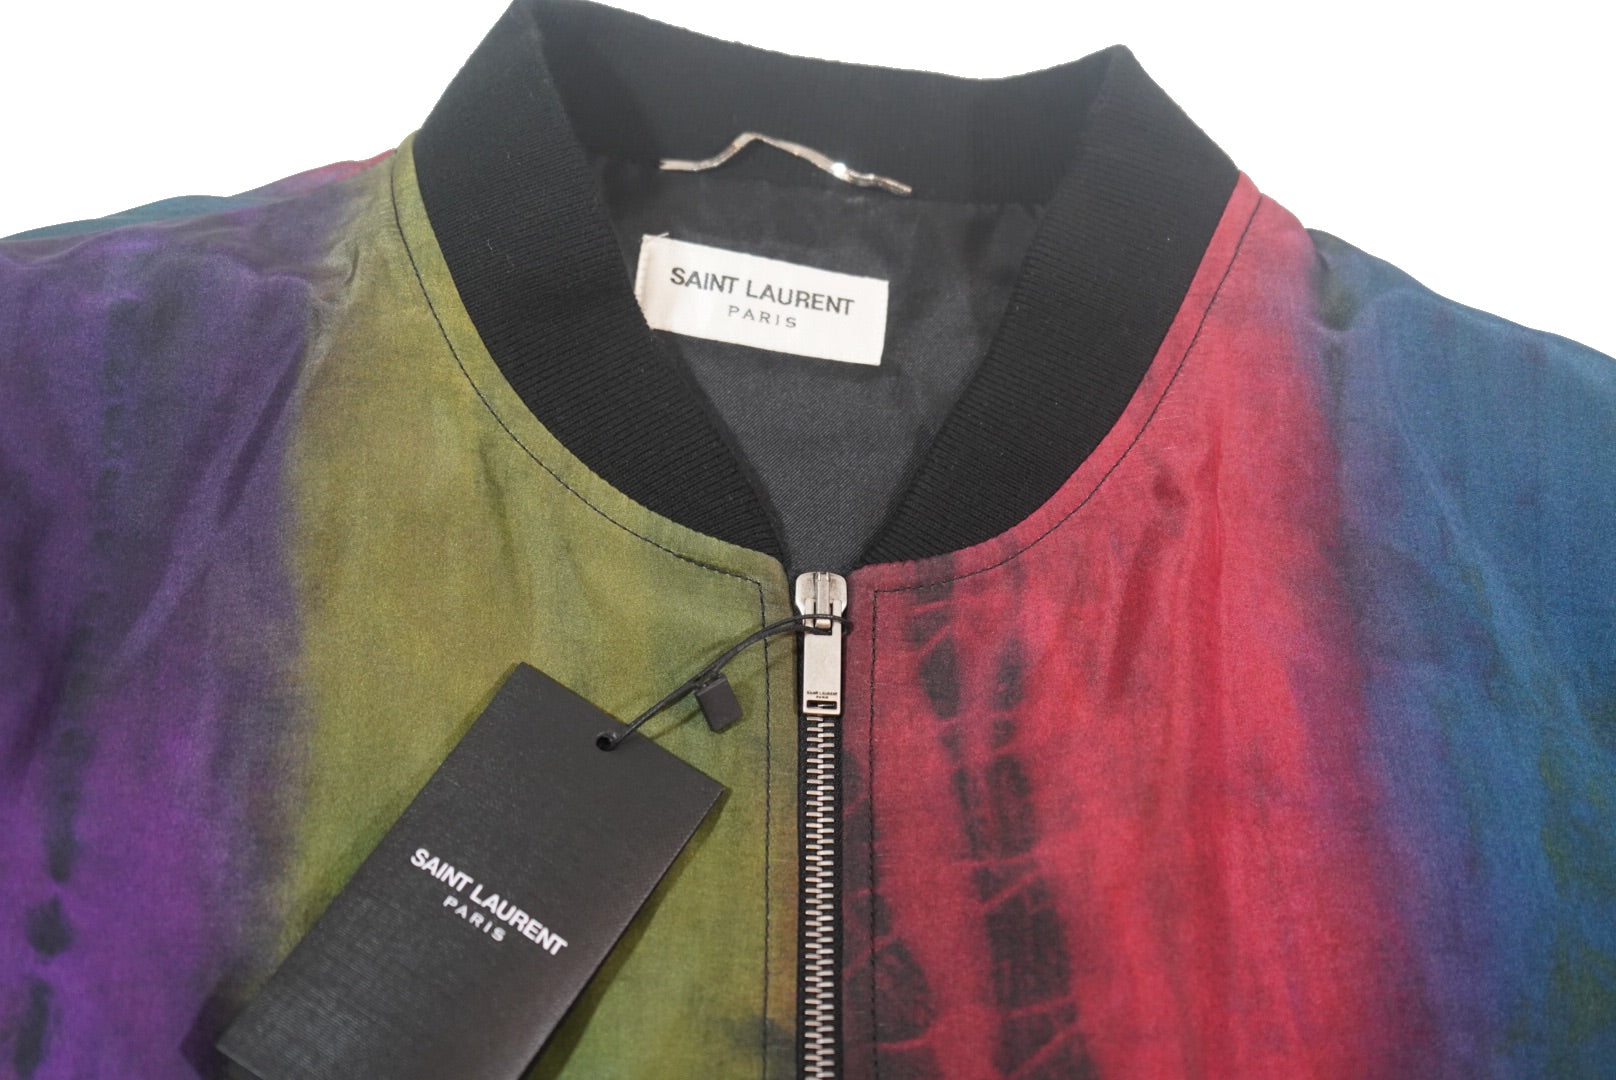 Saint Laurent tie dye jacket